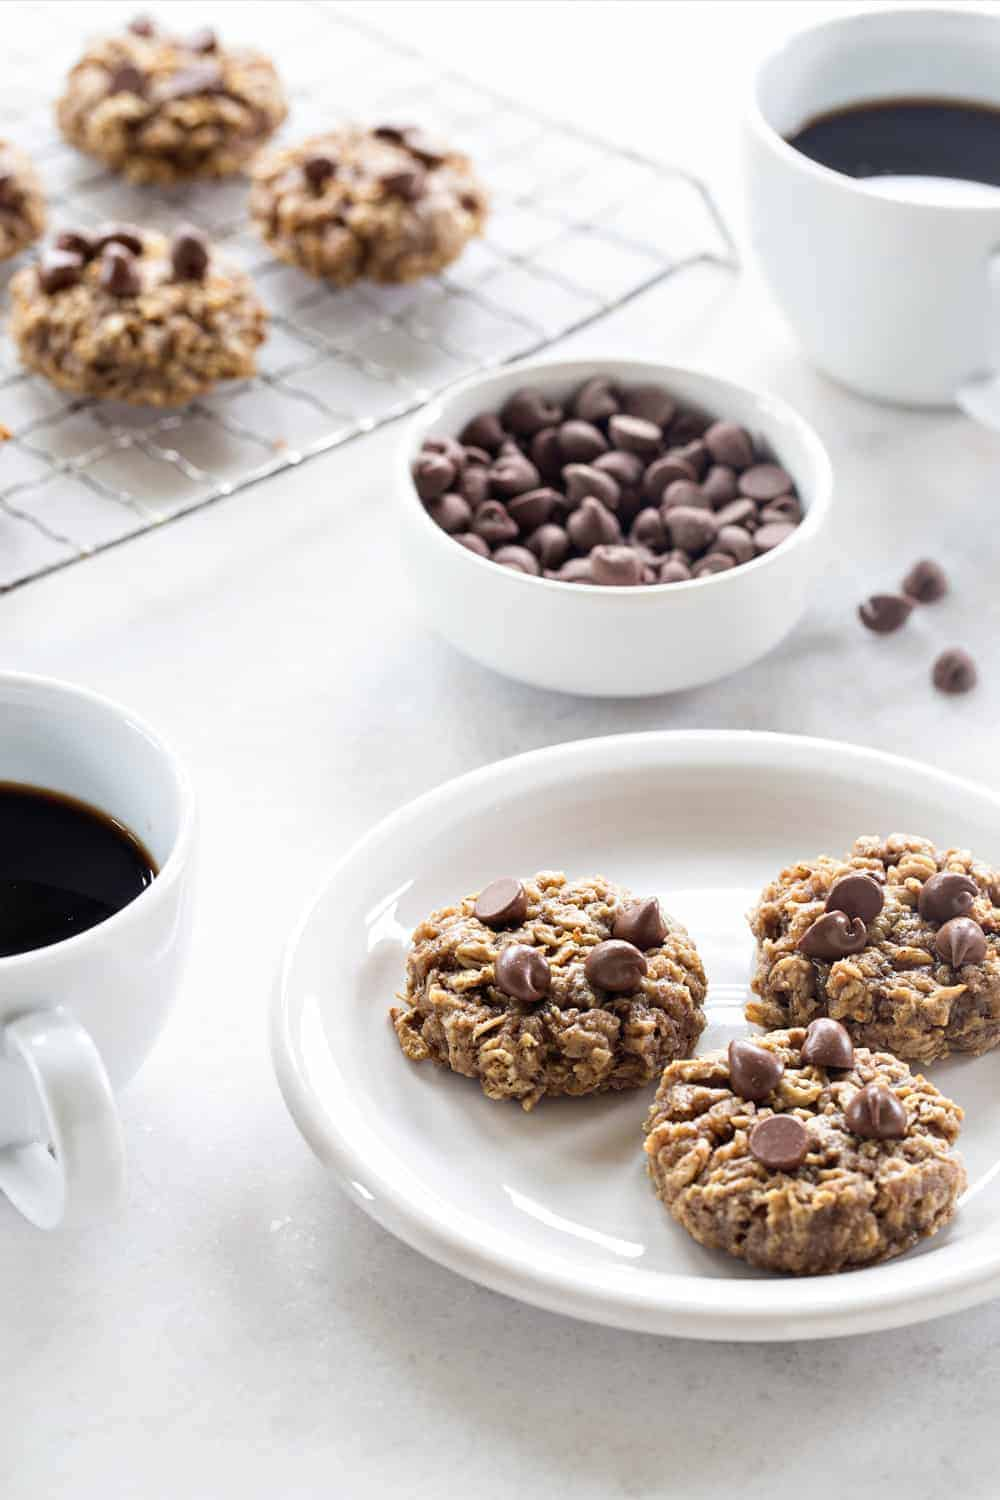 Banana Oatmeal Cookies are soft, chewy and studded with chocolate. They're perfect for breakfast, or dessert!